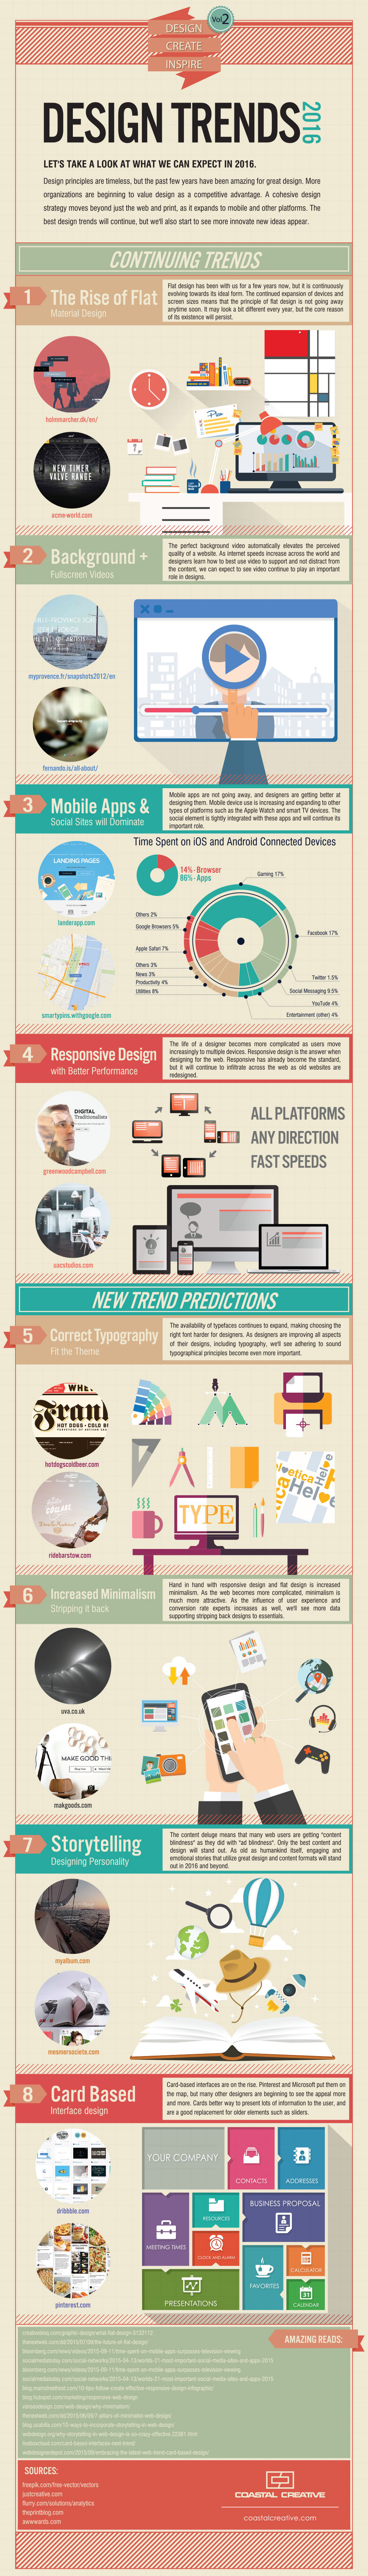 8 Web Design Trends To Be Excited About In 2016